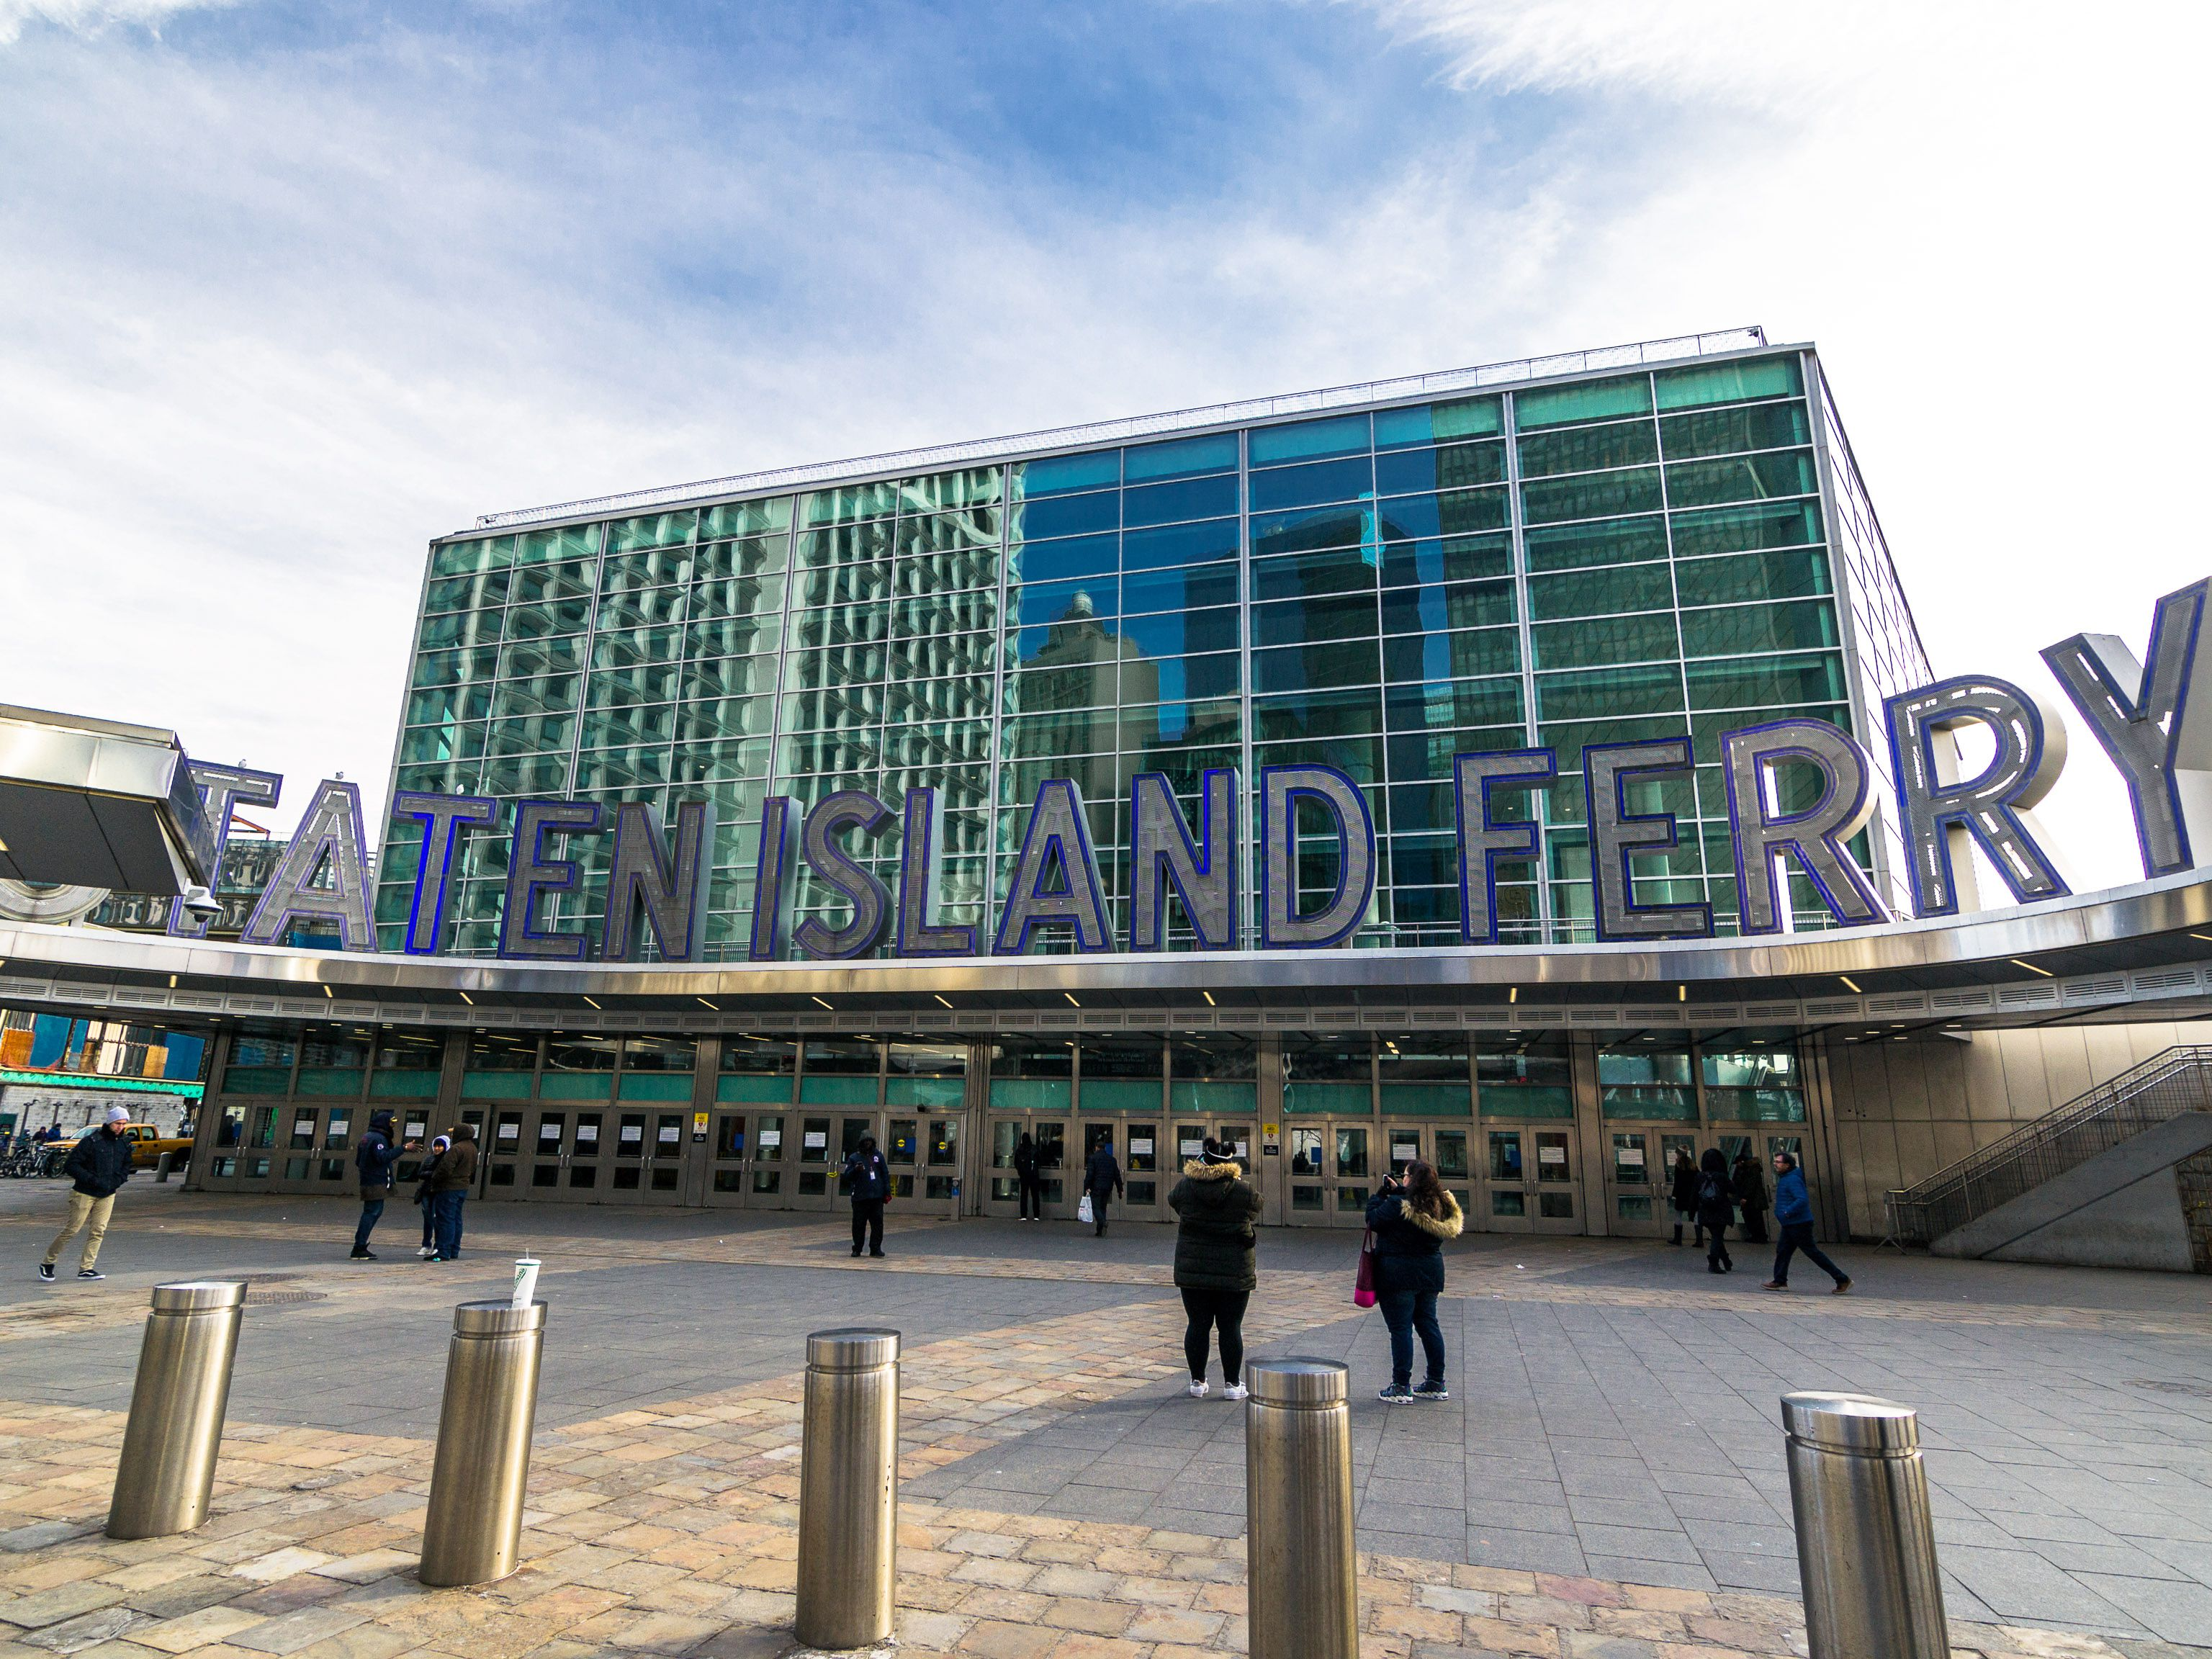 Staten Island Ferry Visitor Guide